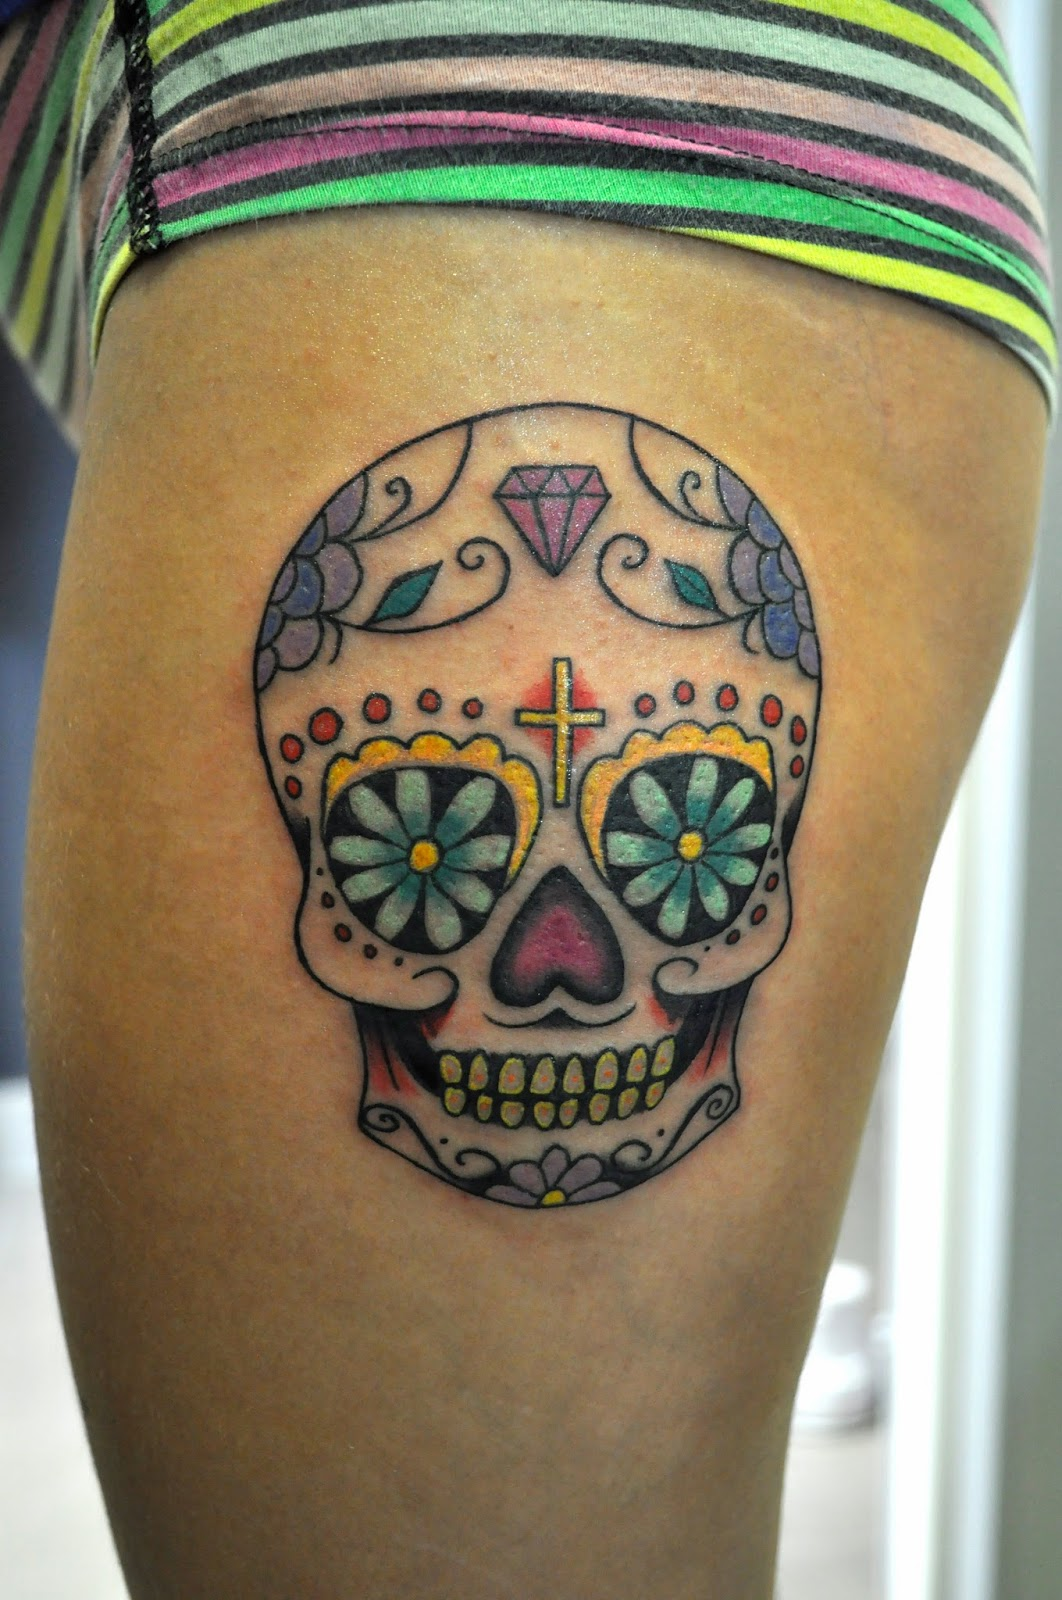 Calaveras mexicanas tattoo